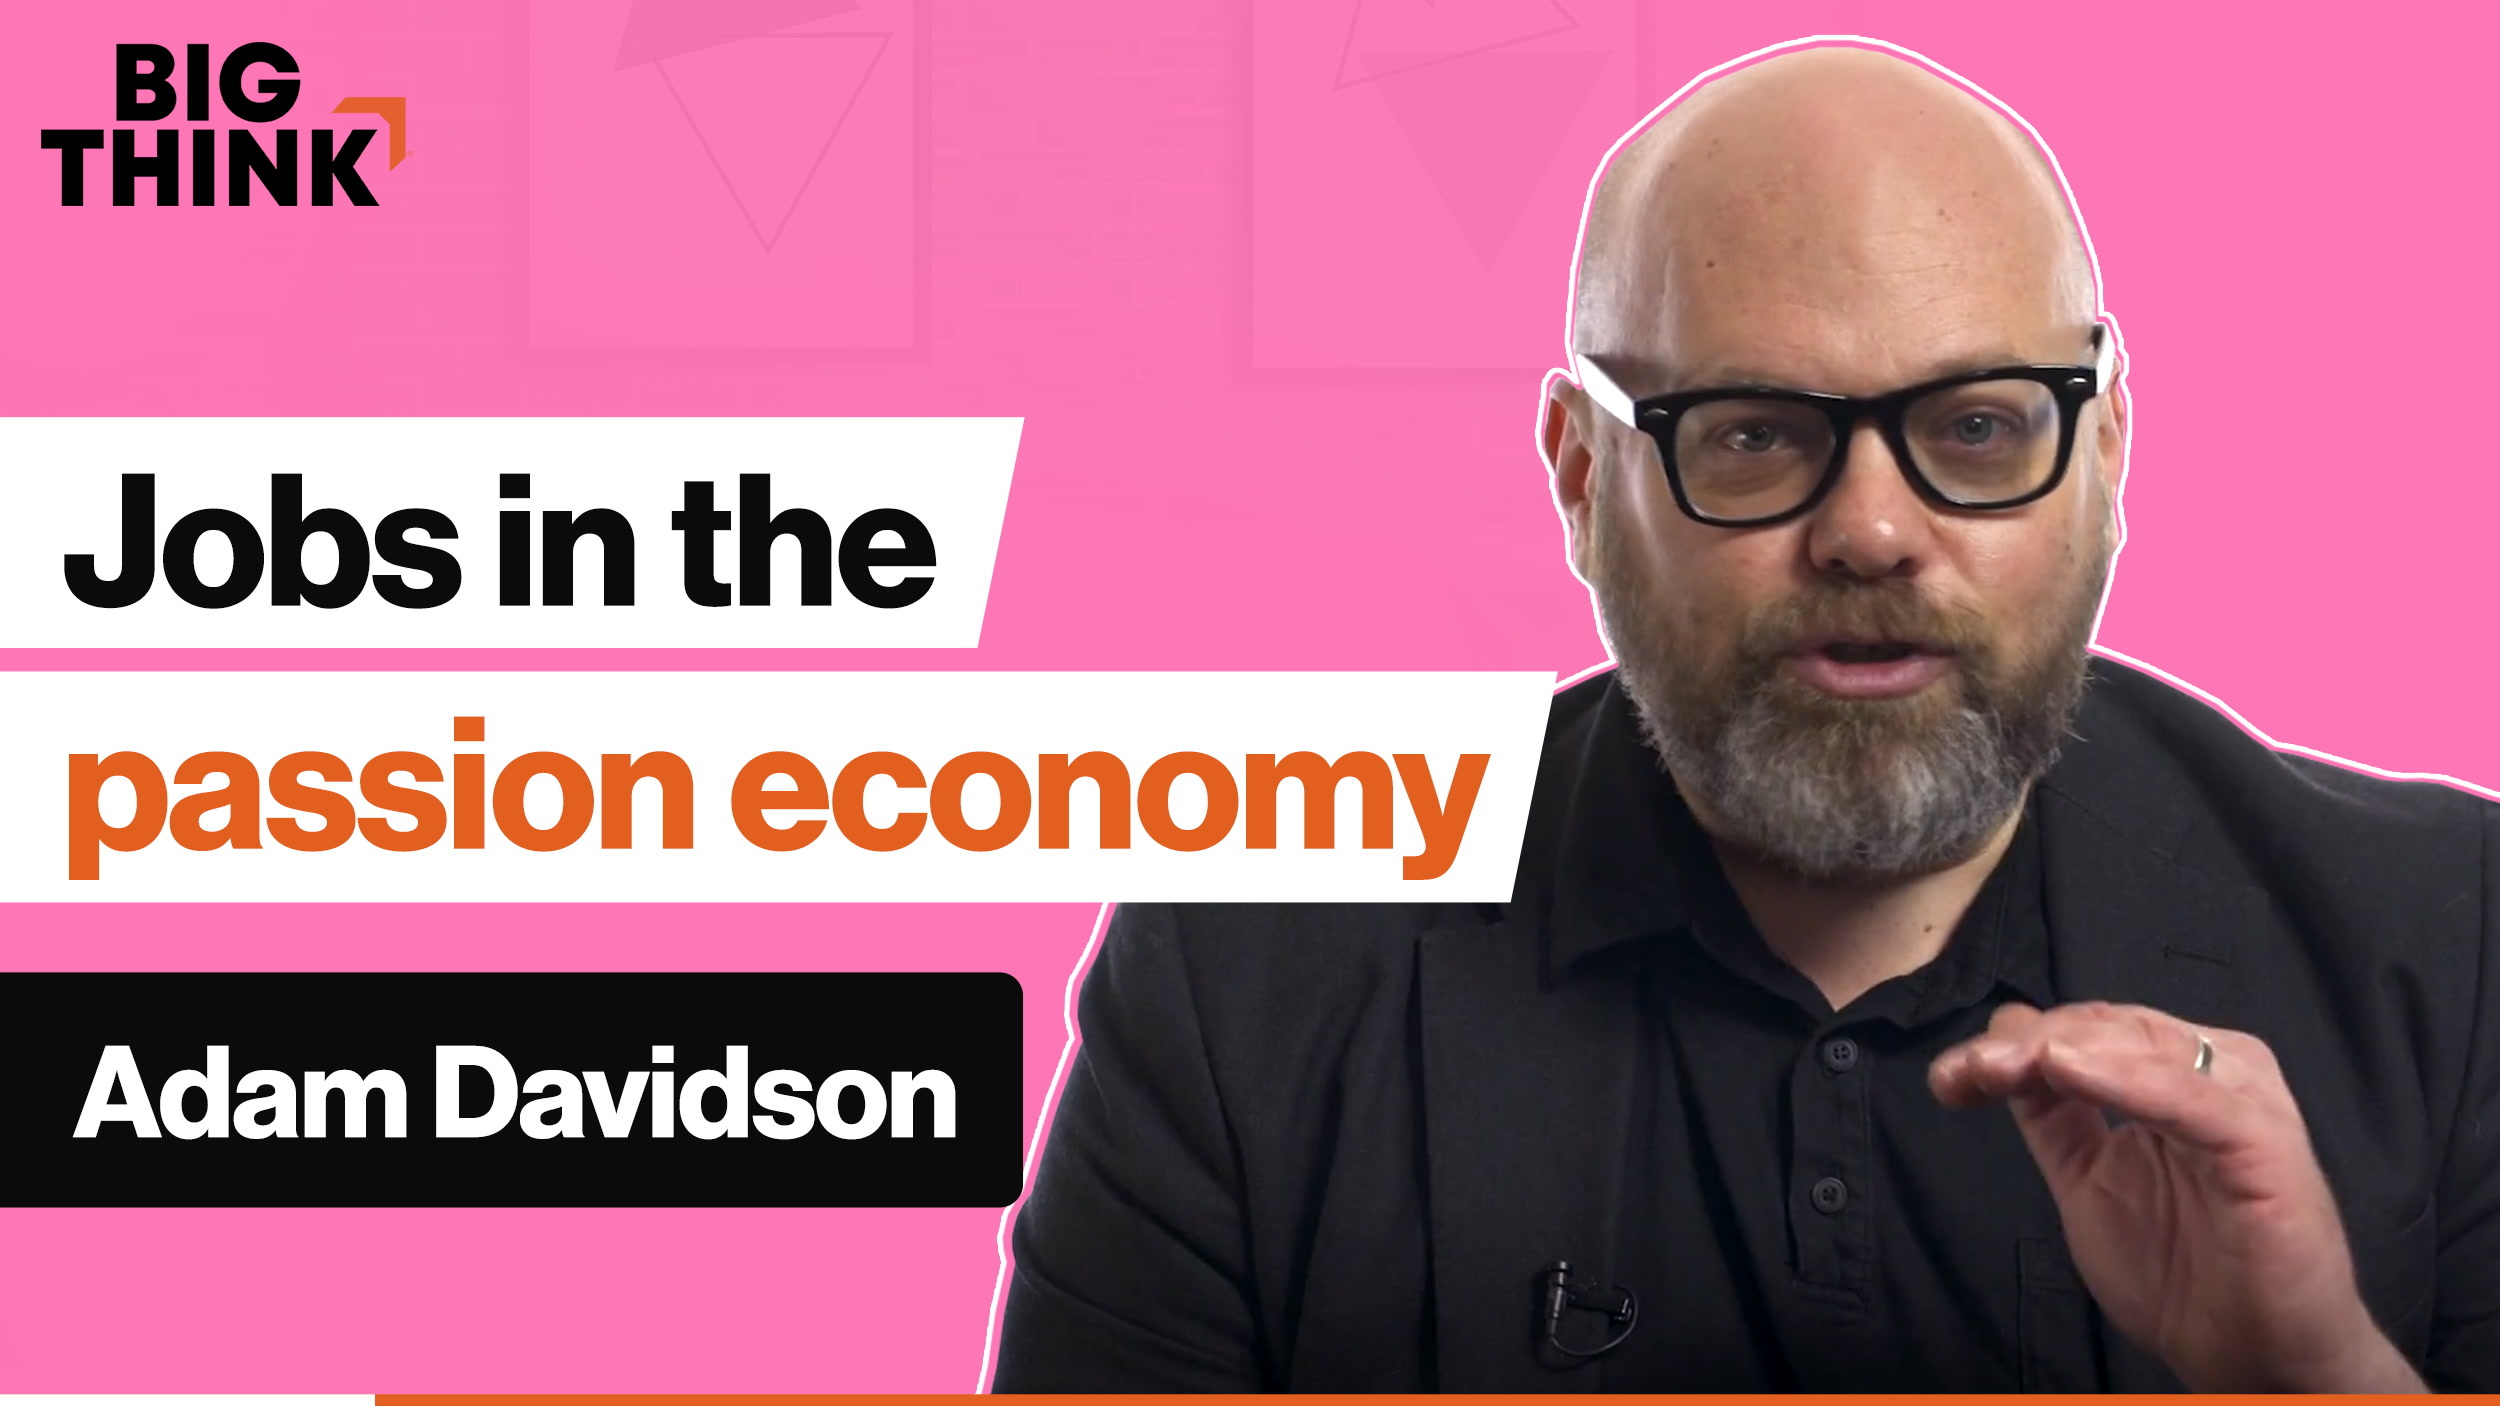 How is the passion economy changing the way we look at jobs?